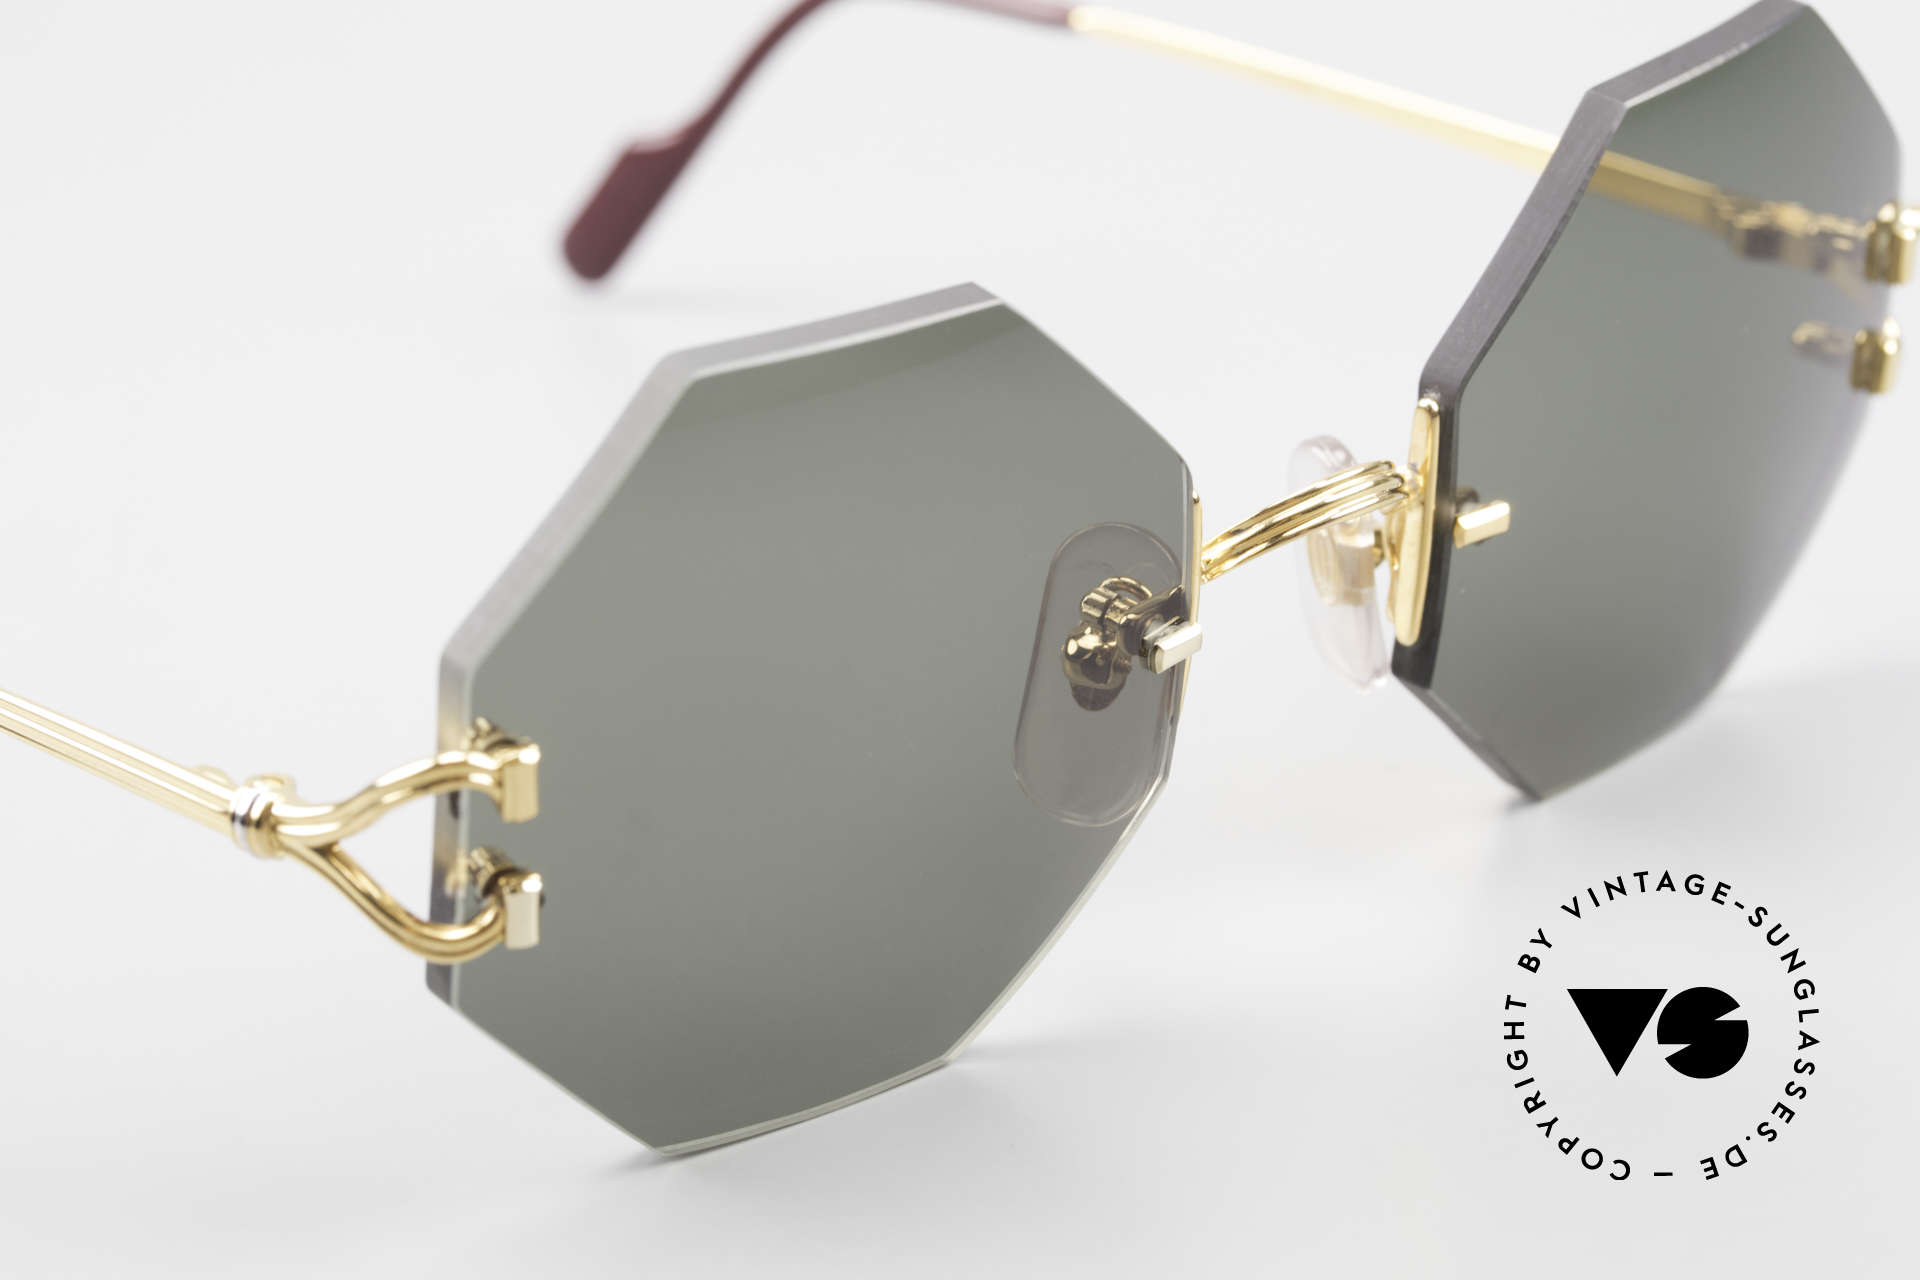 Cartier Rimless Octag Rimless Octagonal Sunglasses, unworn rarity comes with an original case by Cartier, Made for Men and Women